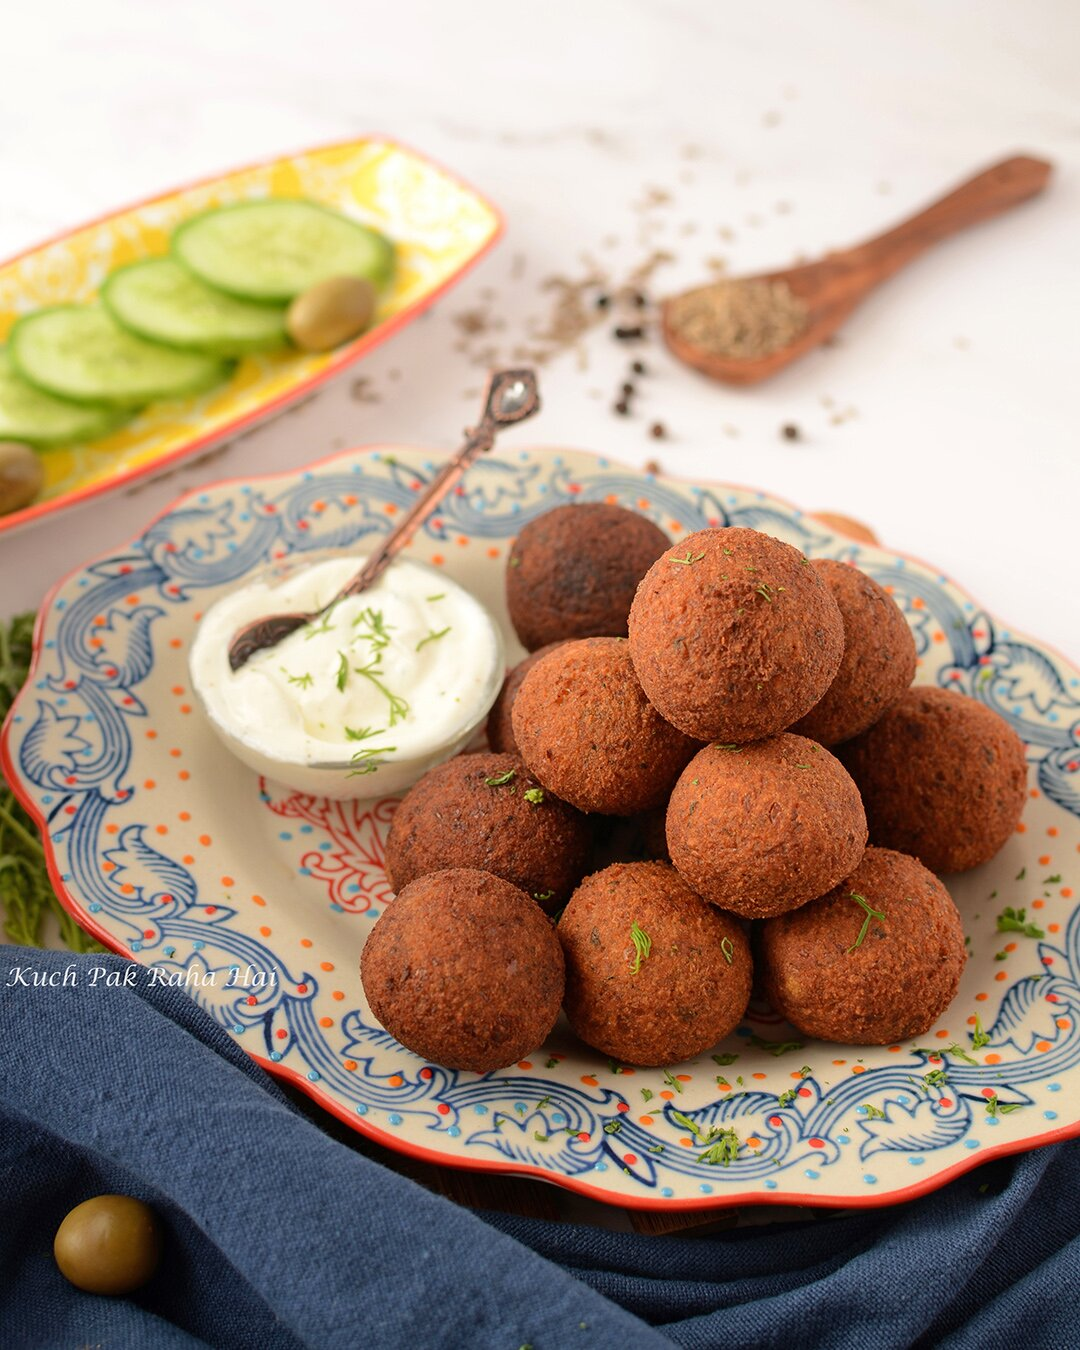 Easy Falafel Recipe using chickpeas High Protein Vegan Gluten Free Air Fryer